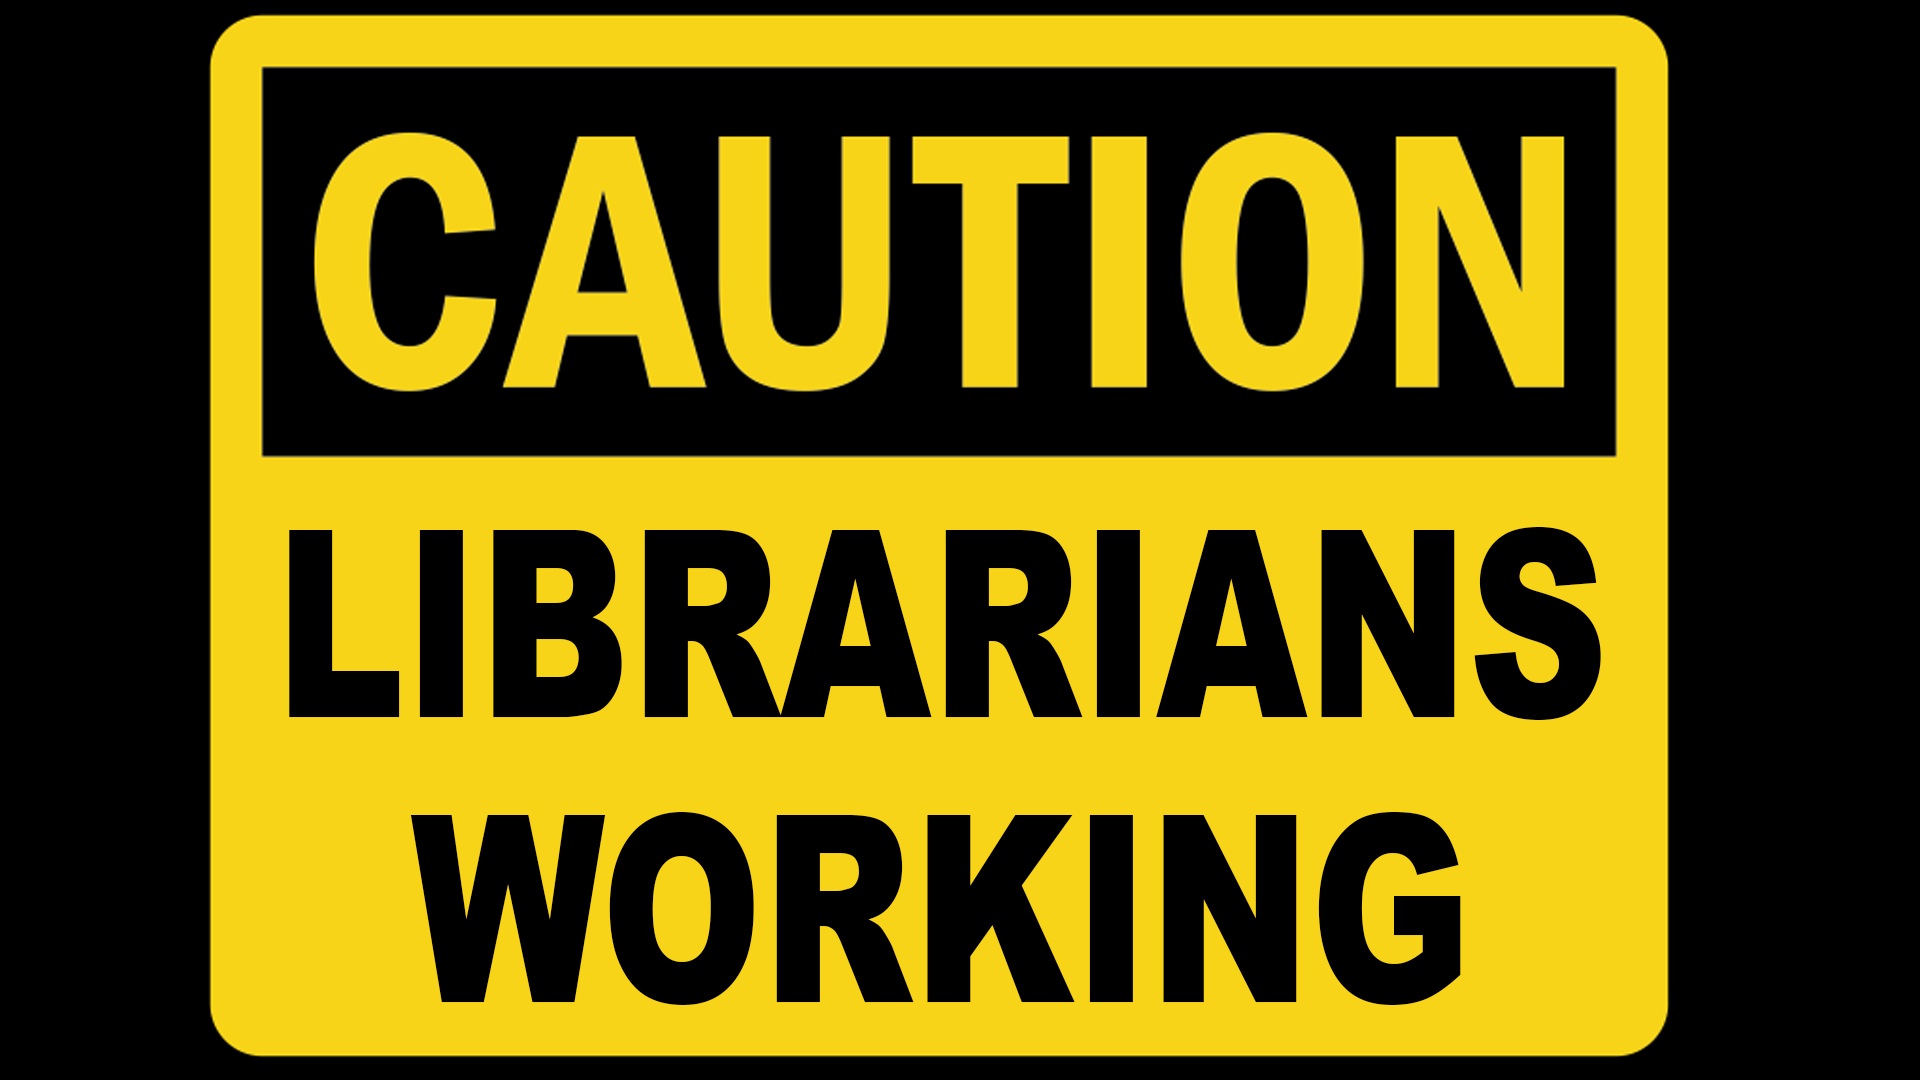 caution sign: librarians working